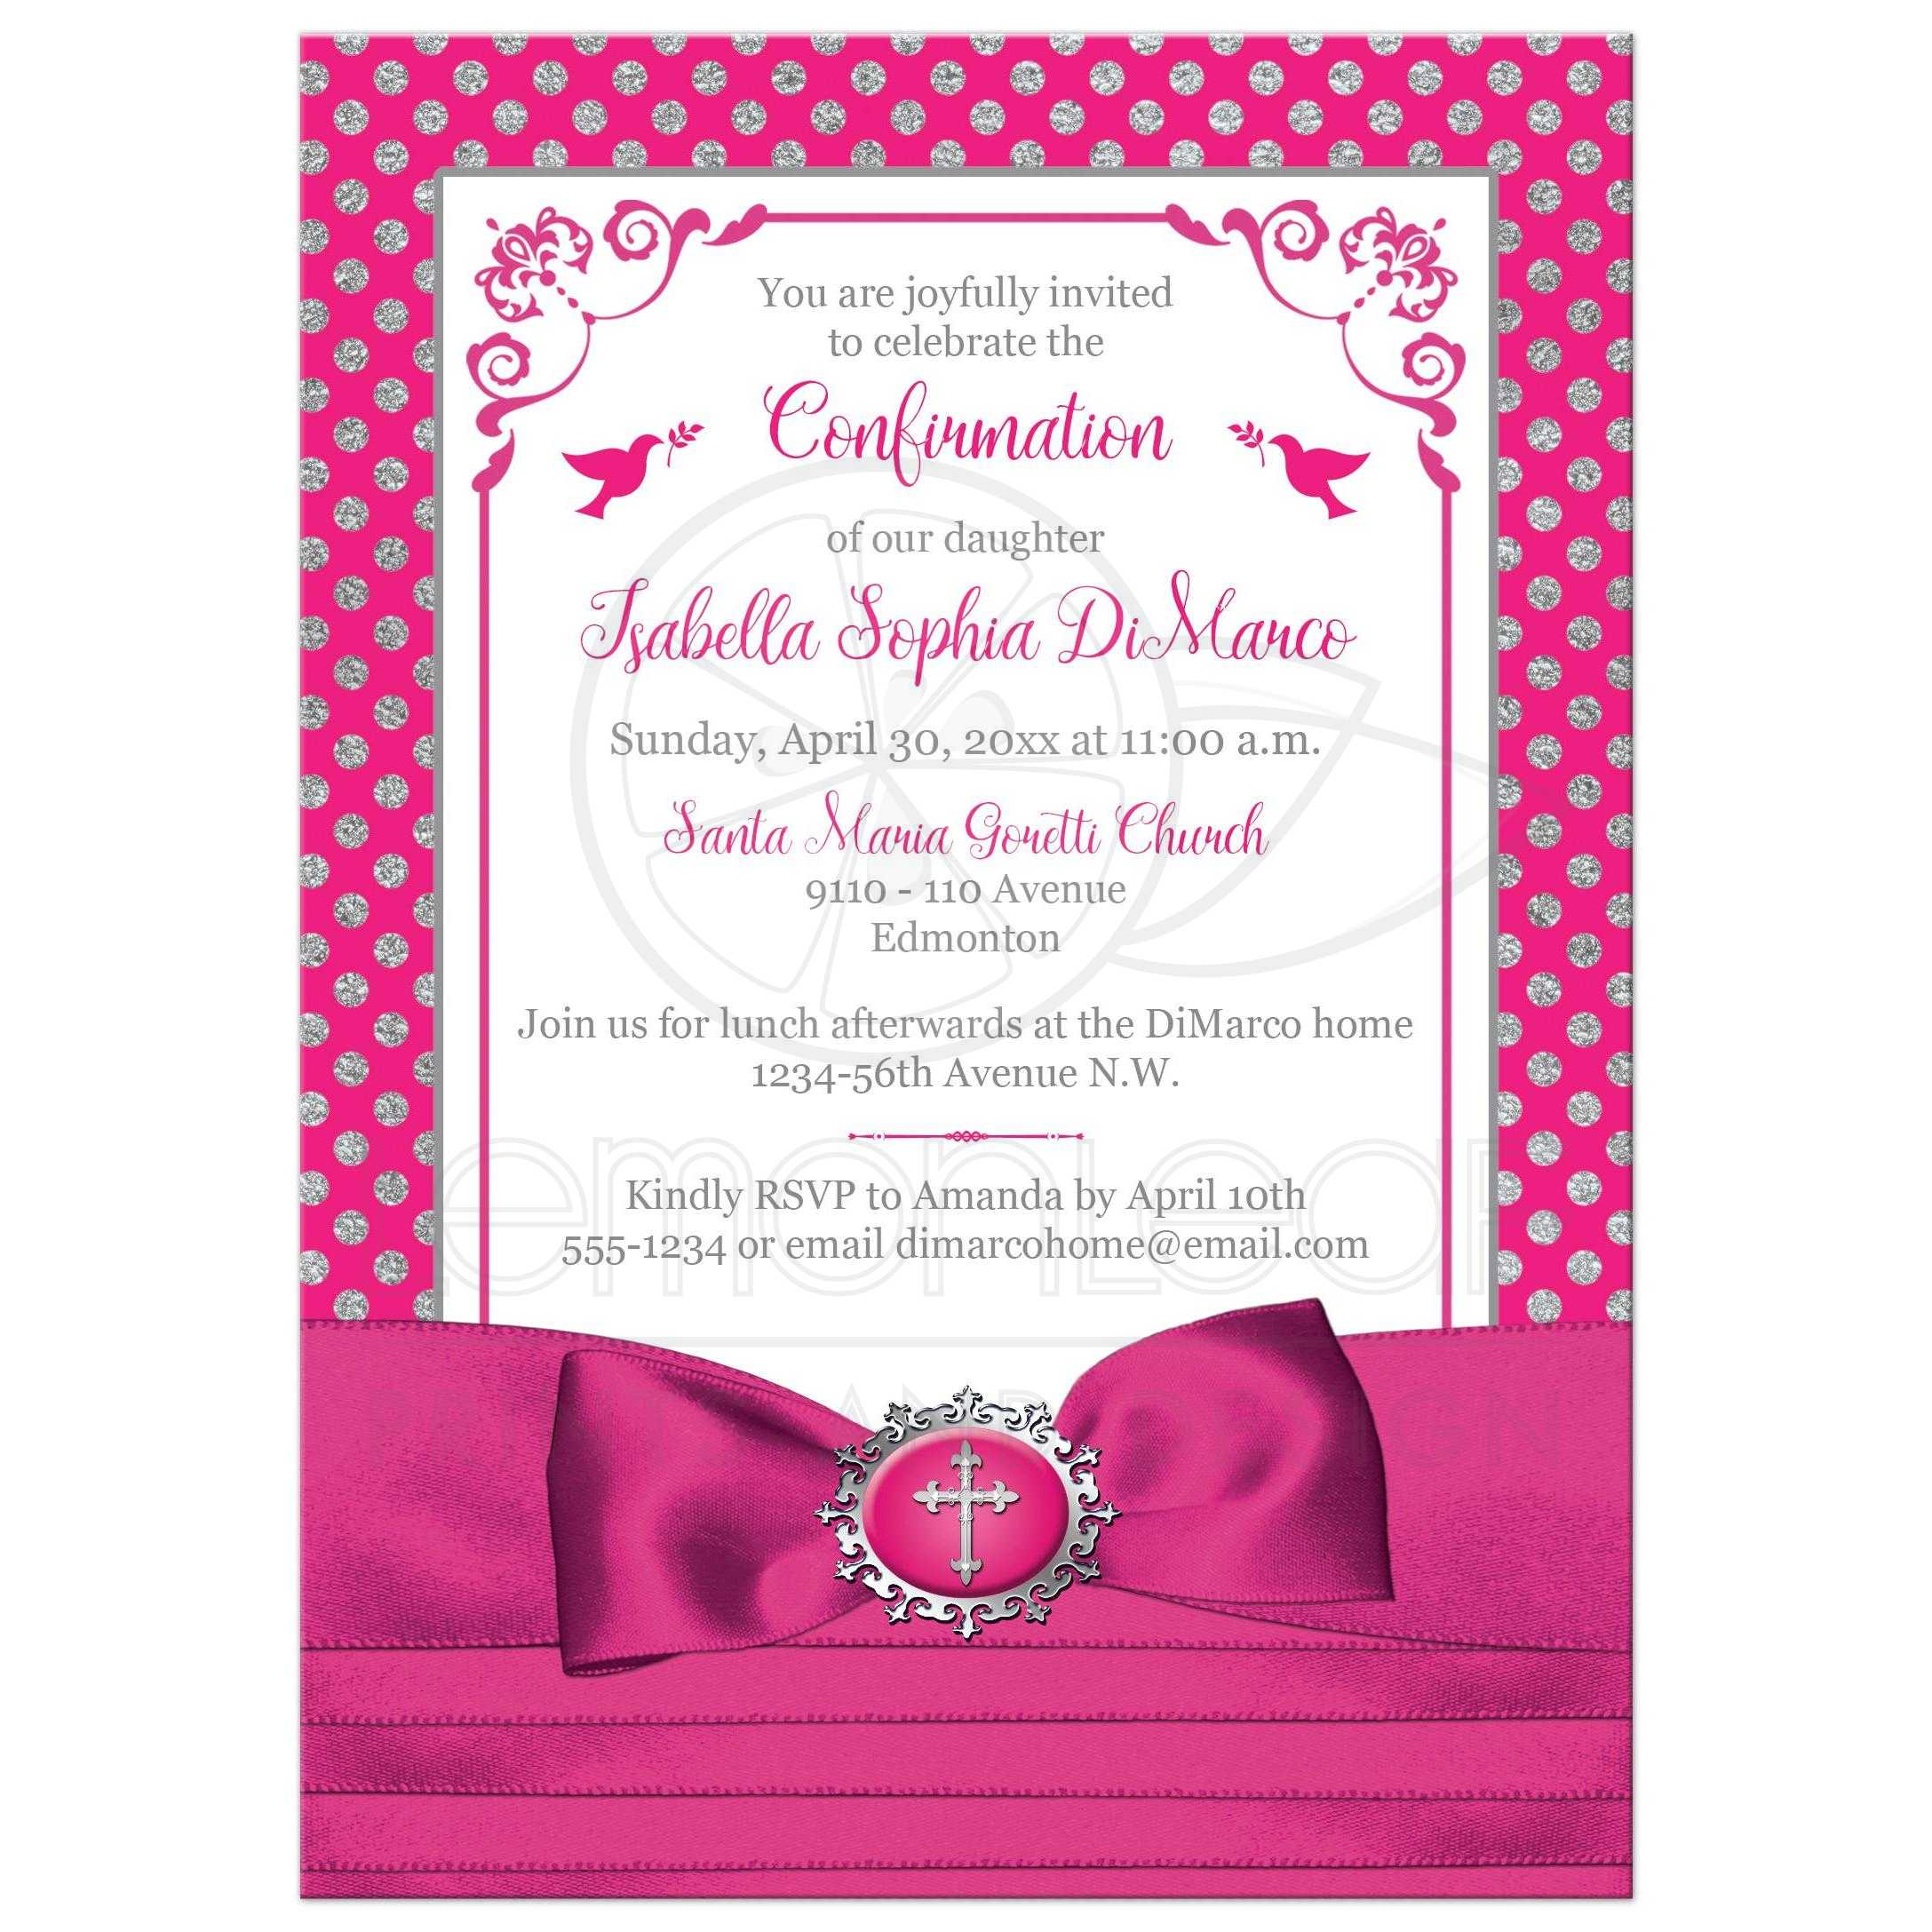 Fuchsia pink white silver polka dots confirmation invitation fuchsia pink silver grey white polka dots confirmation invite with ribbon bow stopboris Gallery